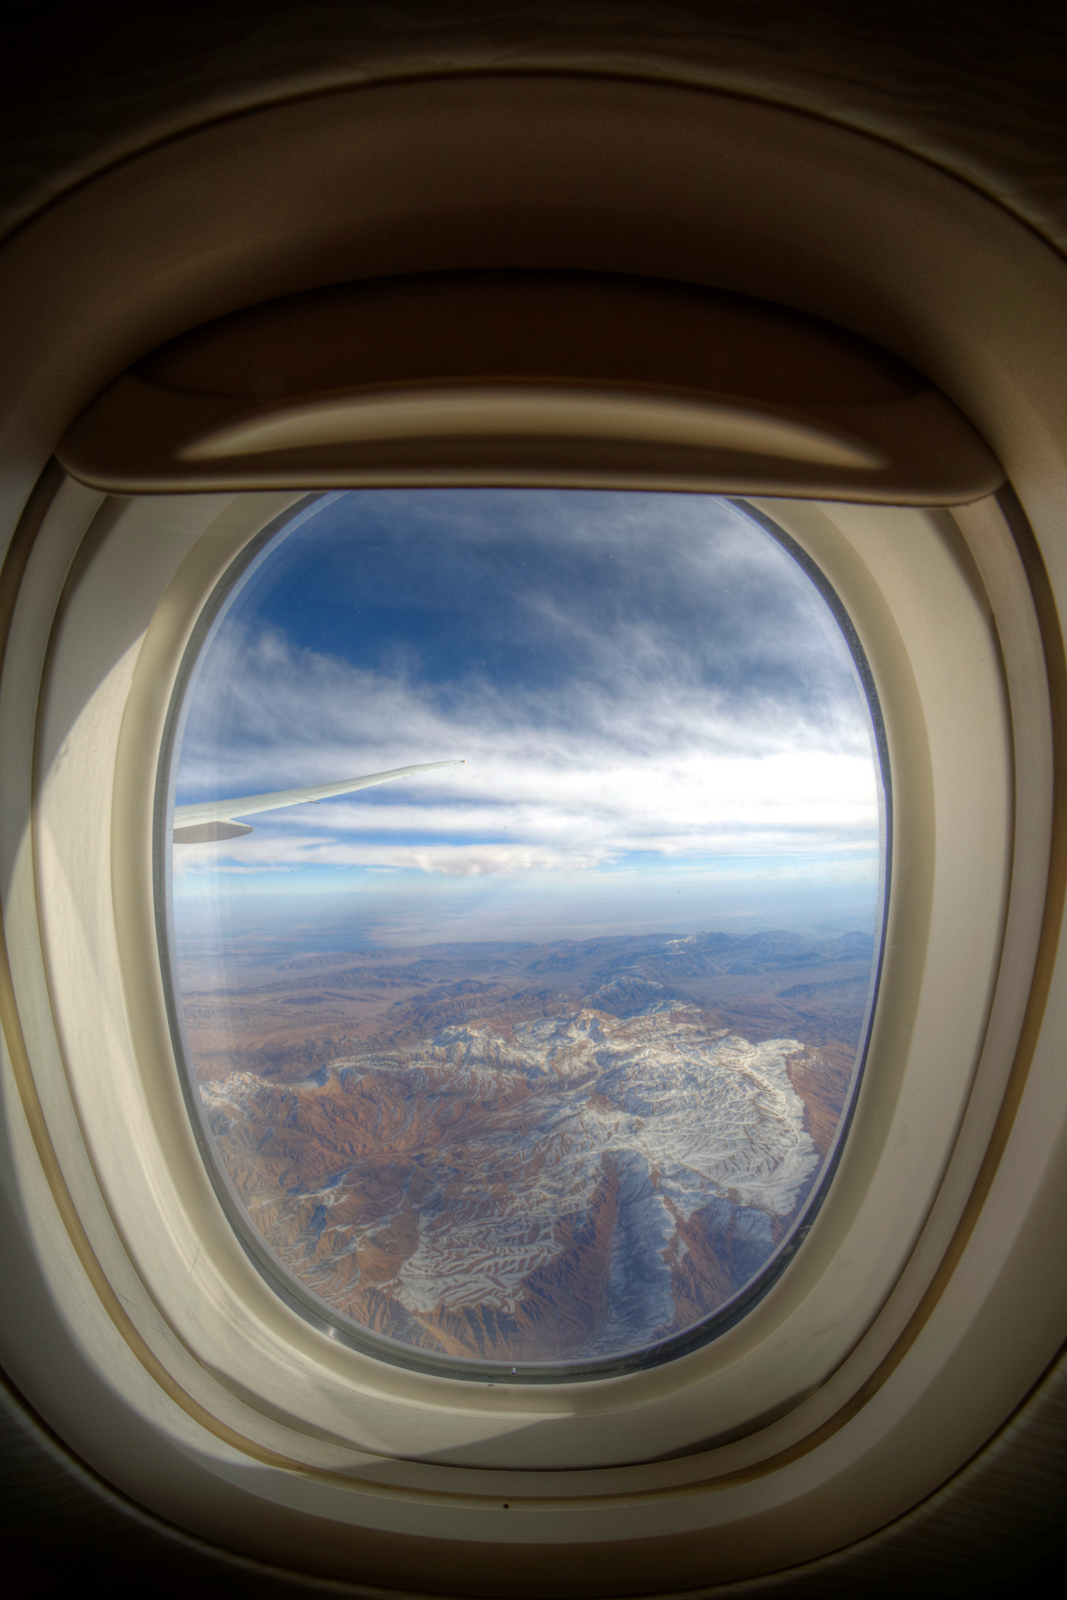 Iran from an Airplane Window